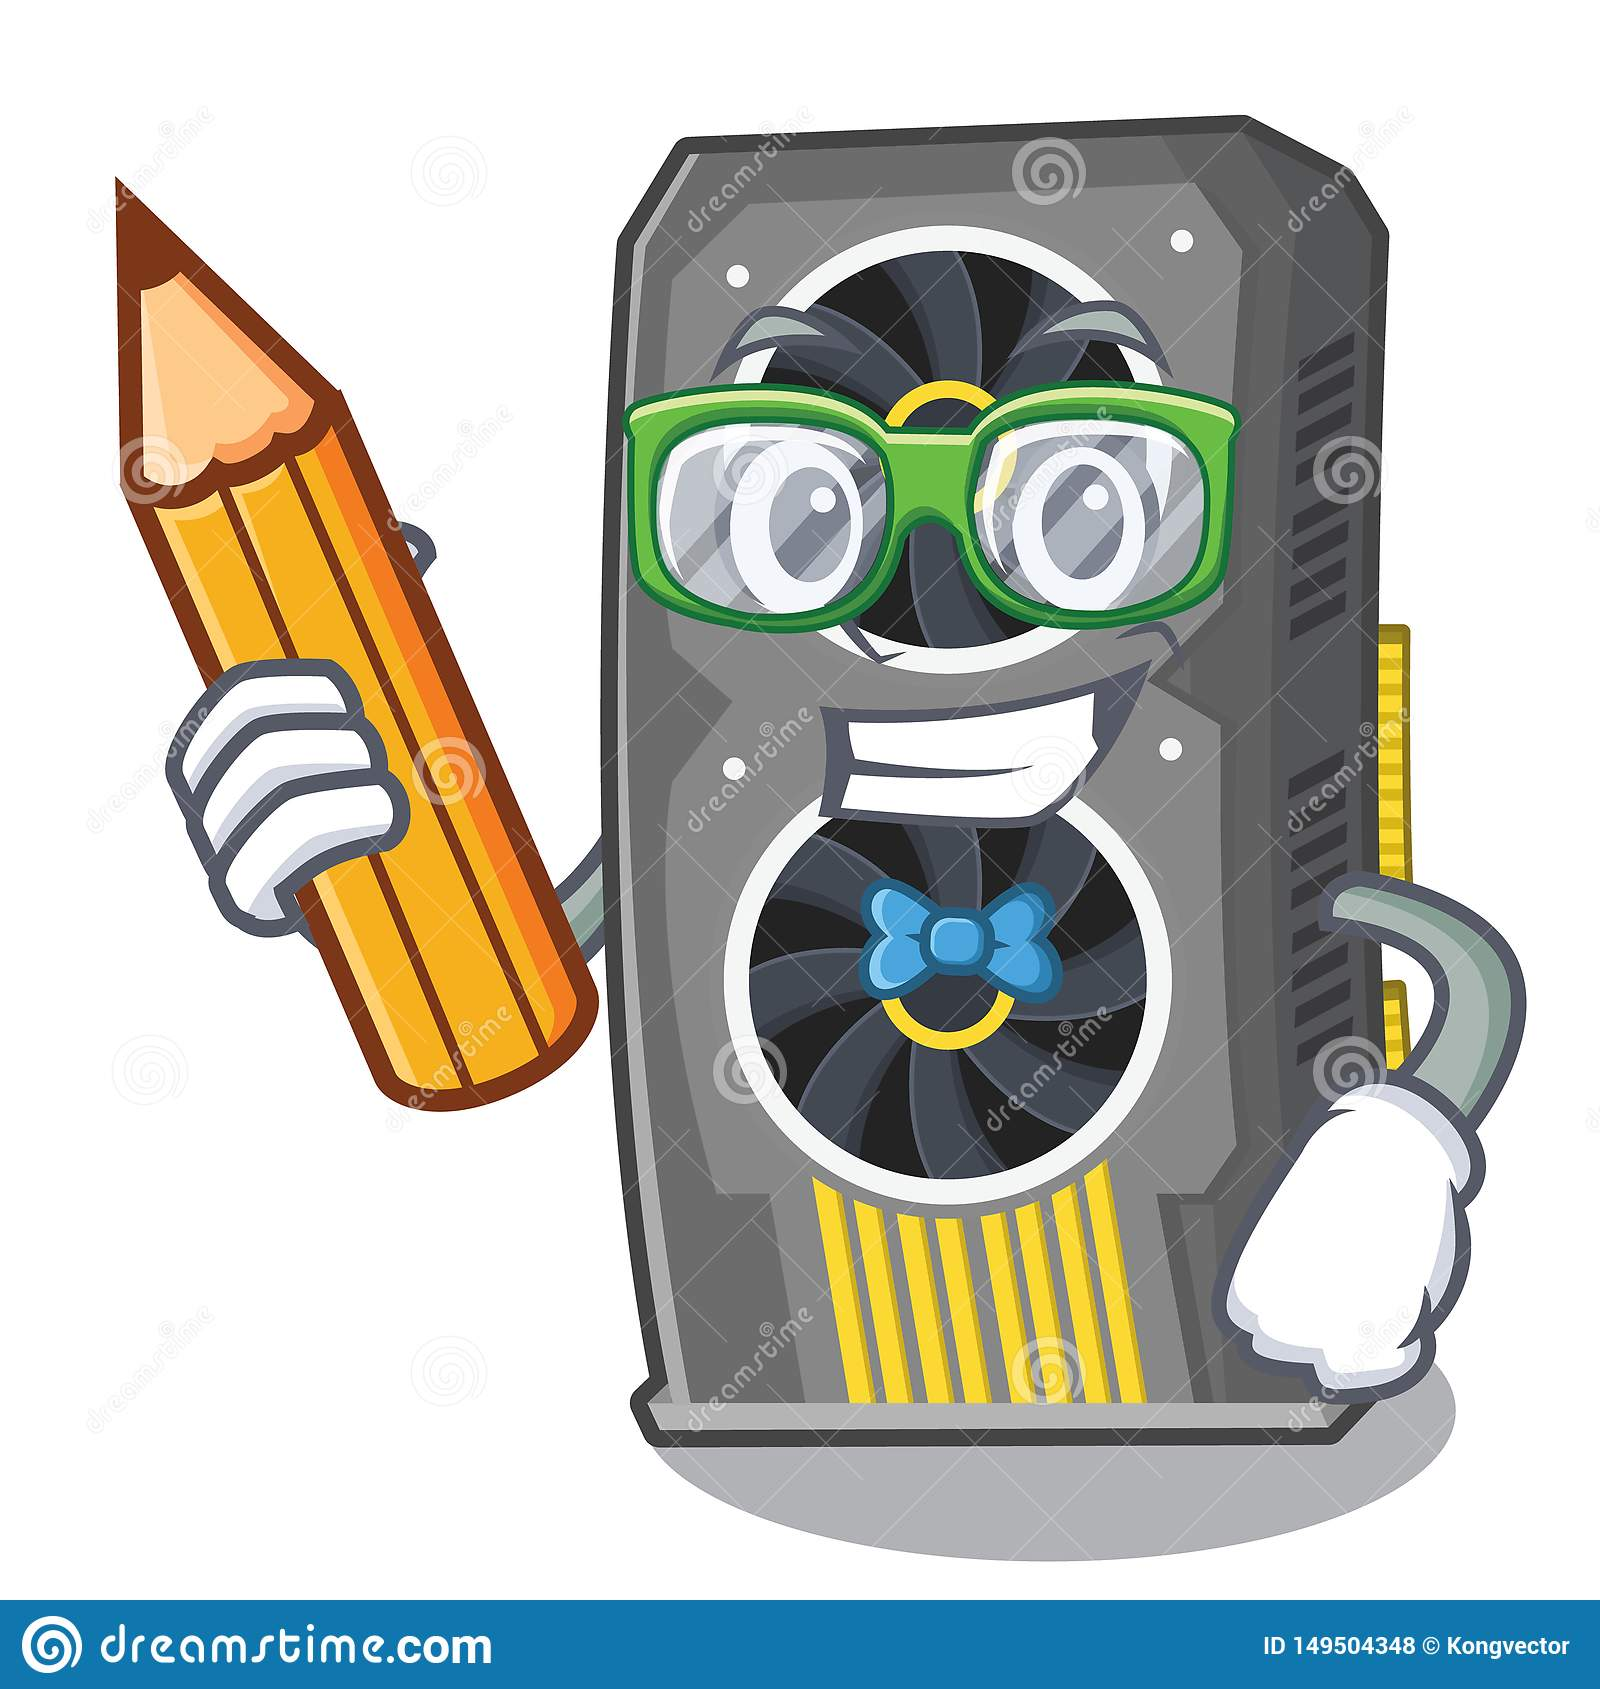 Student video graphics card isolated with cartoon